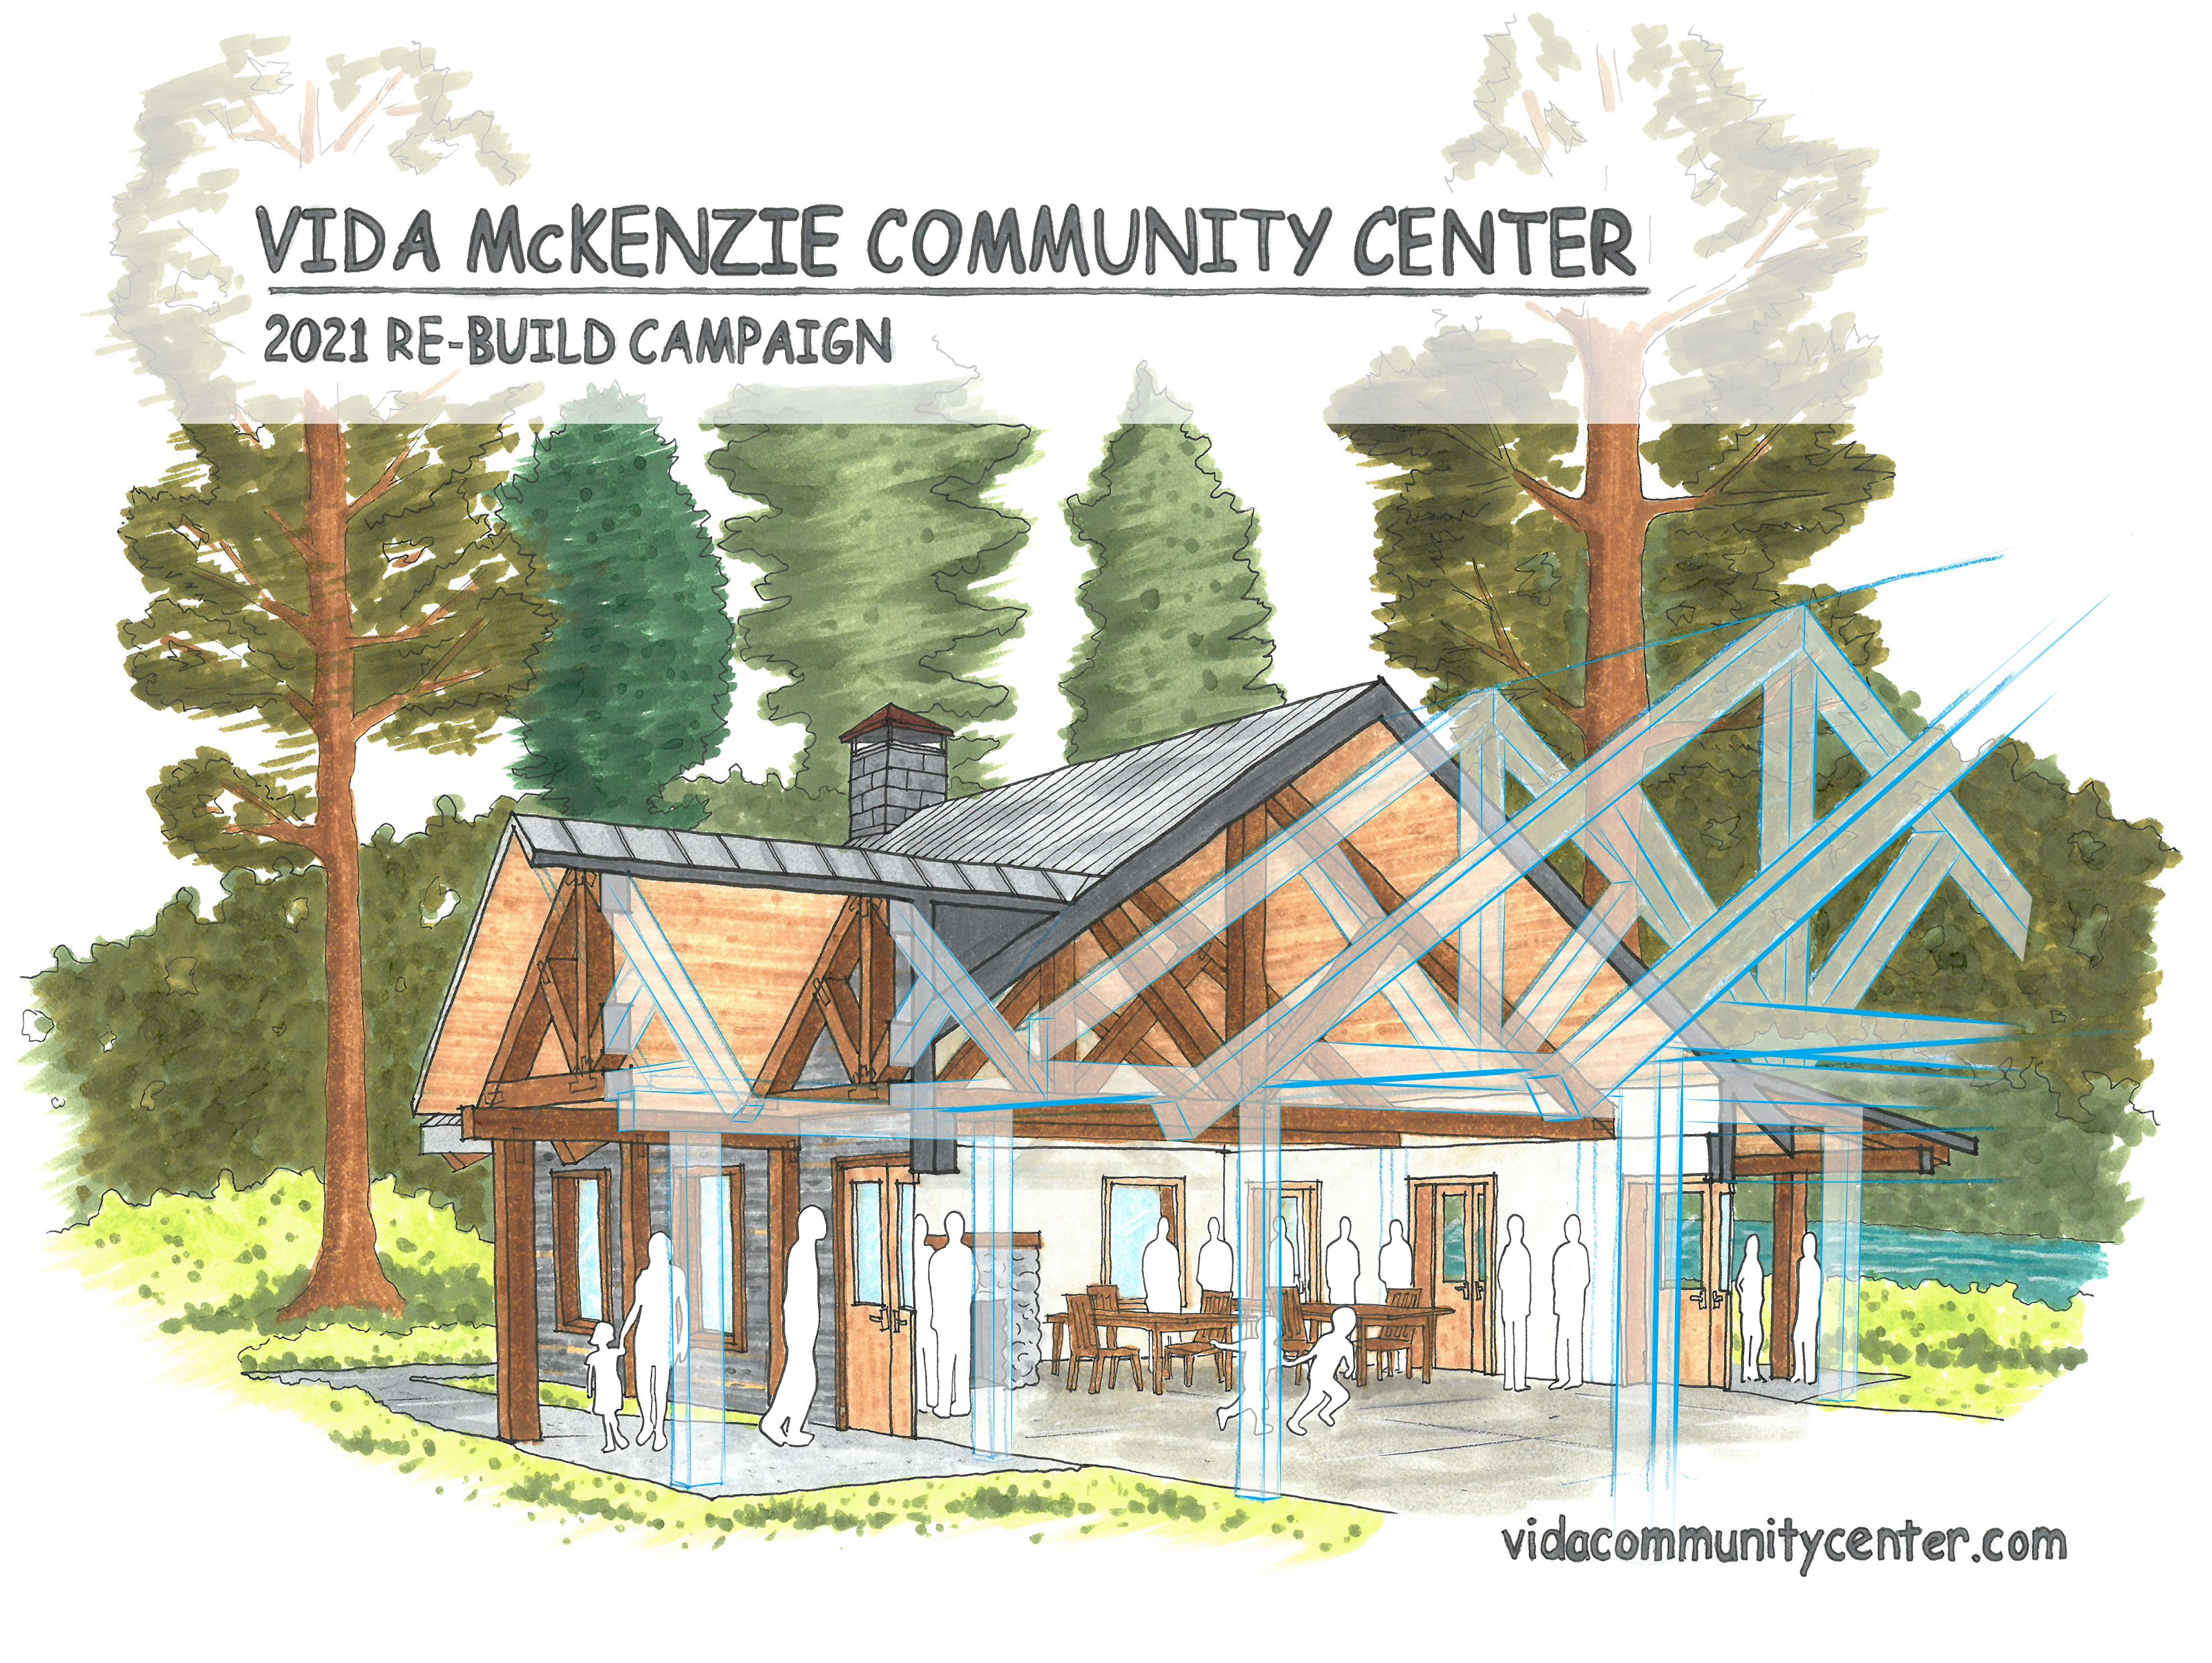 Vida McKenzie Community Center